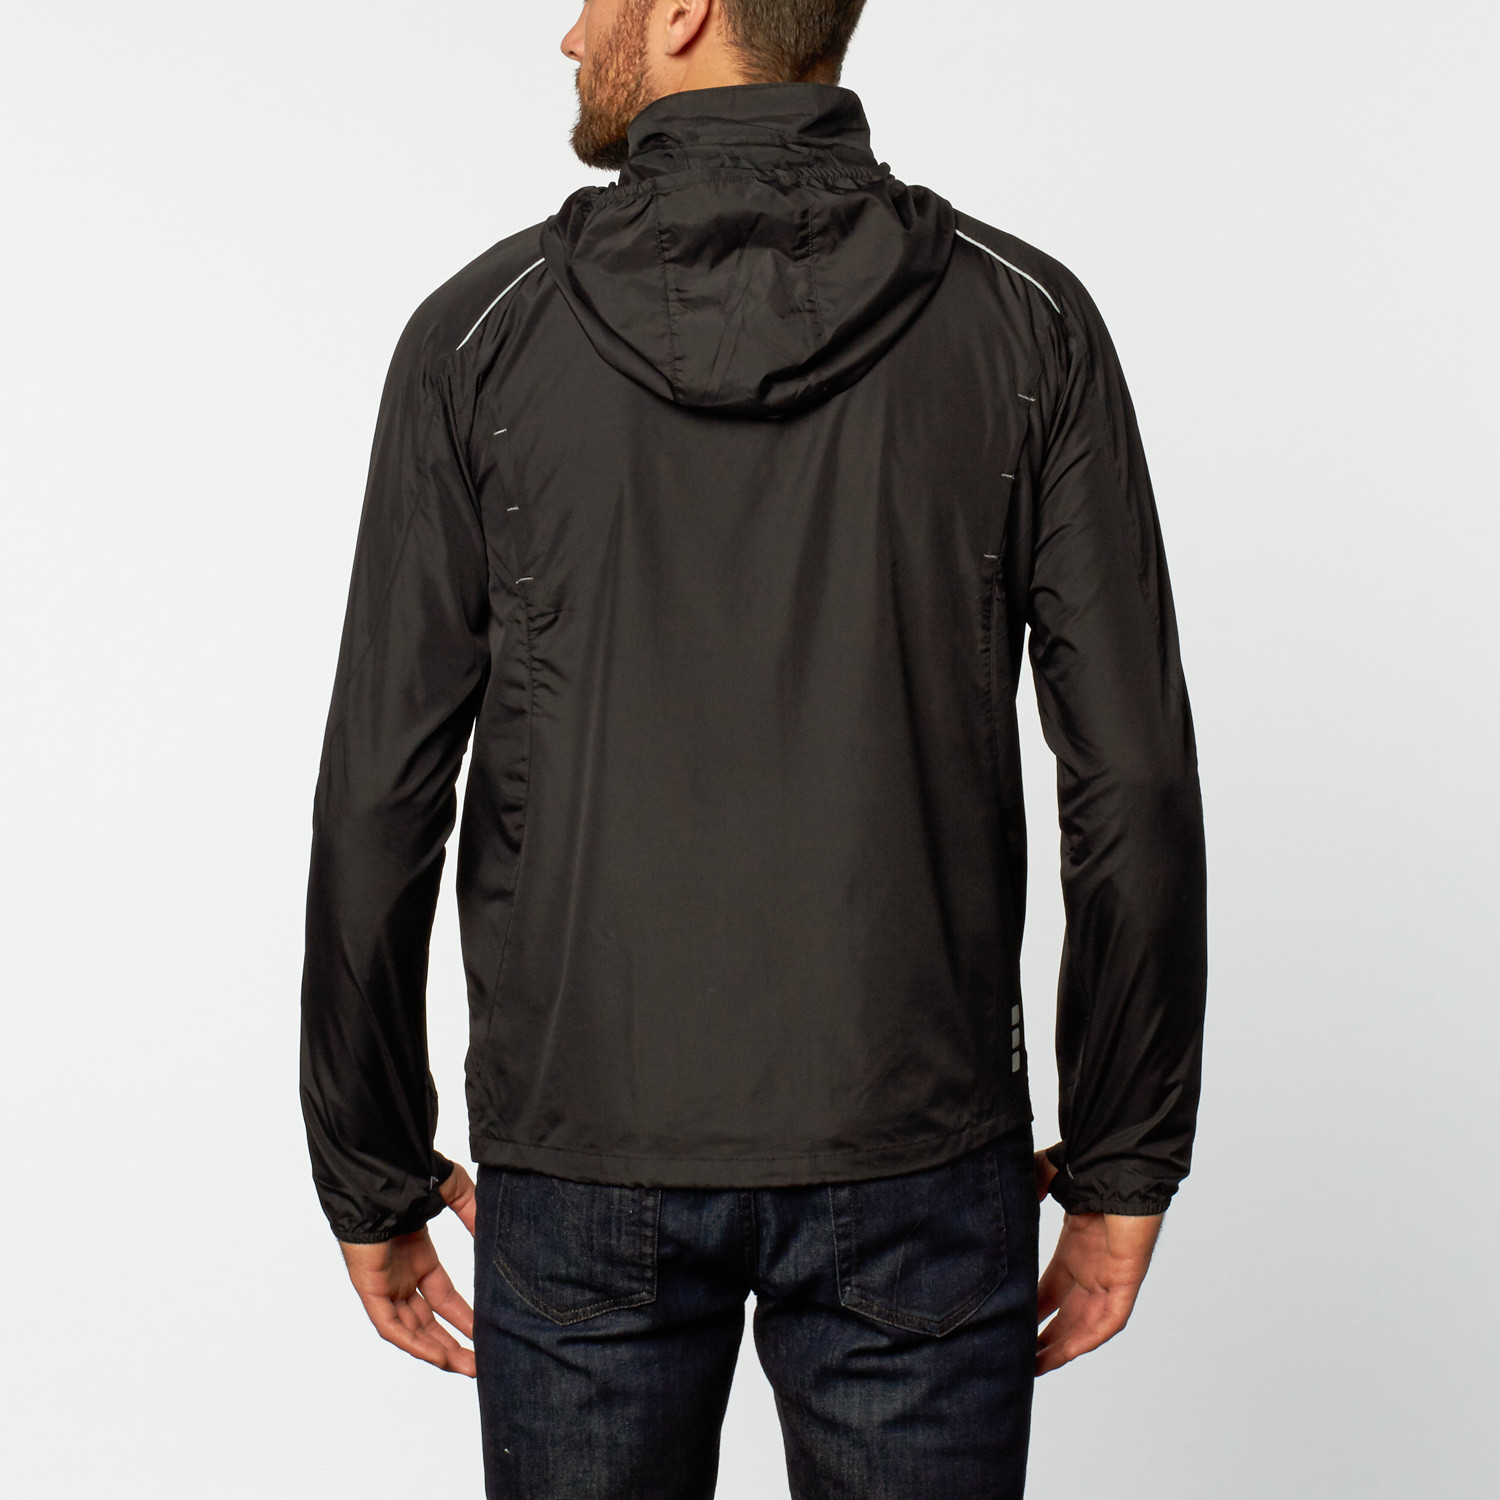 Rain jacket black s mercedes benz clothing touch for Mercedes benz wear